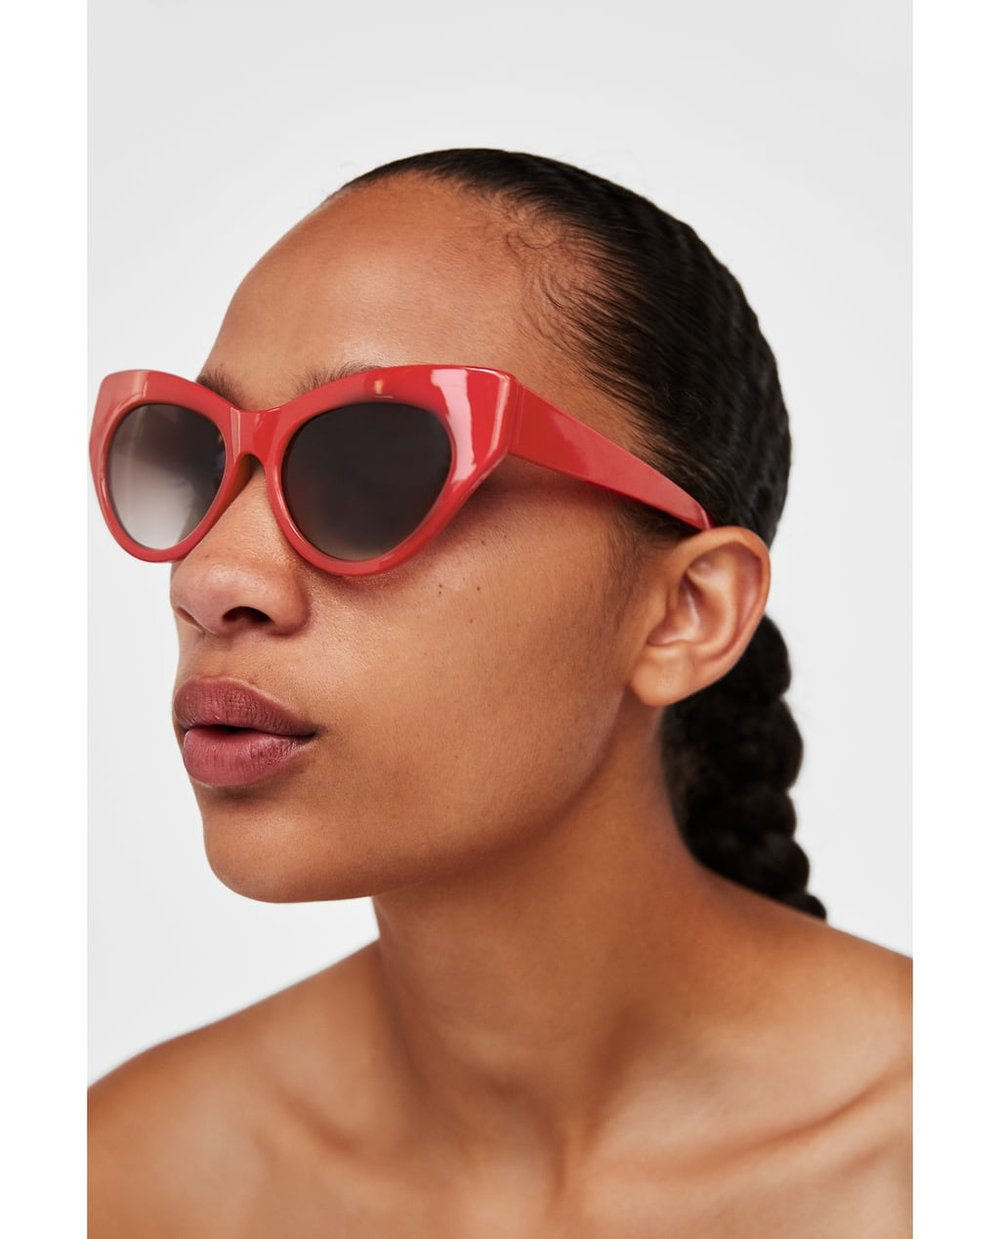 Snazzy sunnies help keep fine lines at bay. - Zara, £15.99